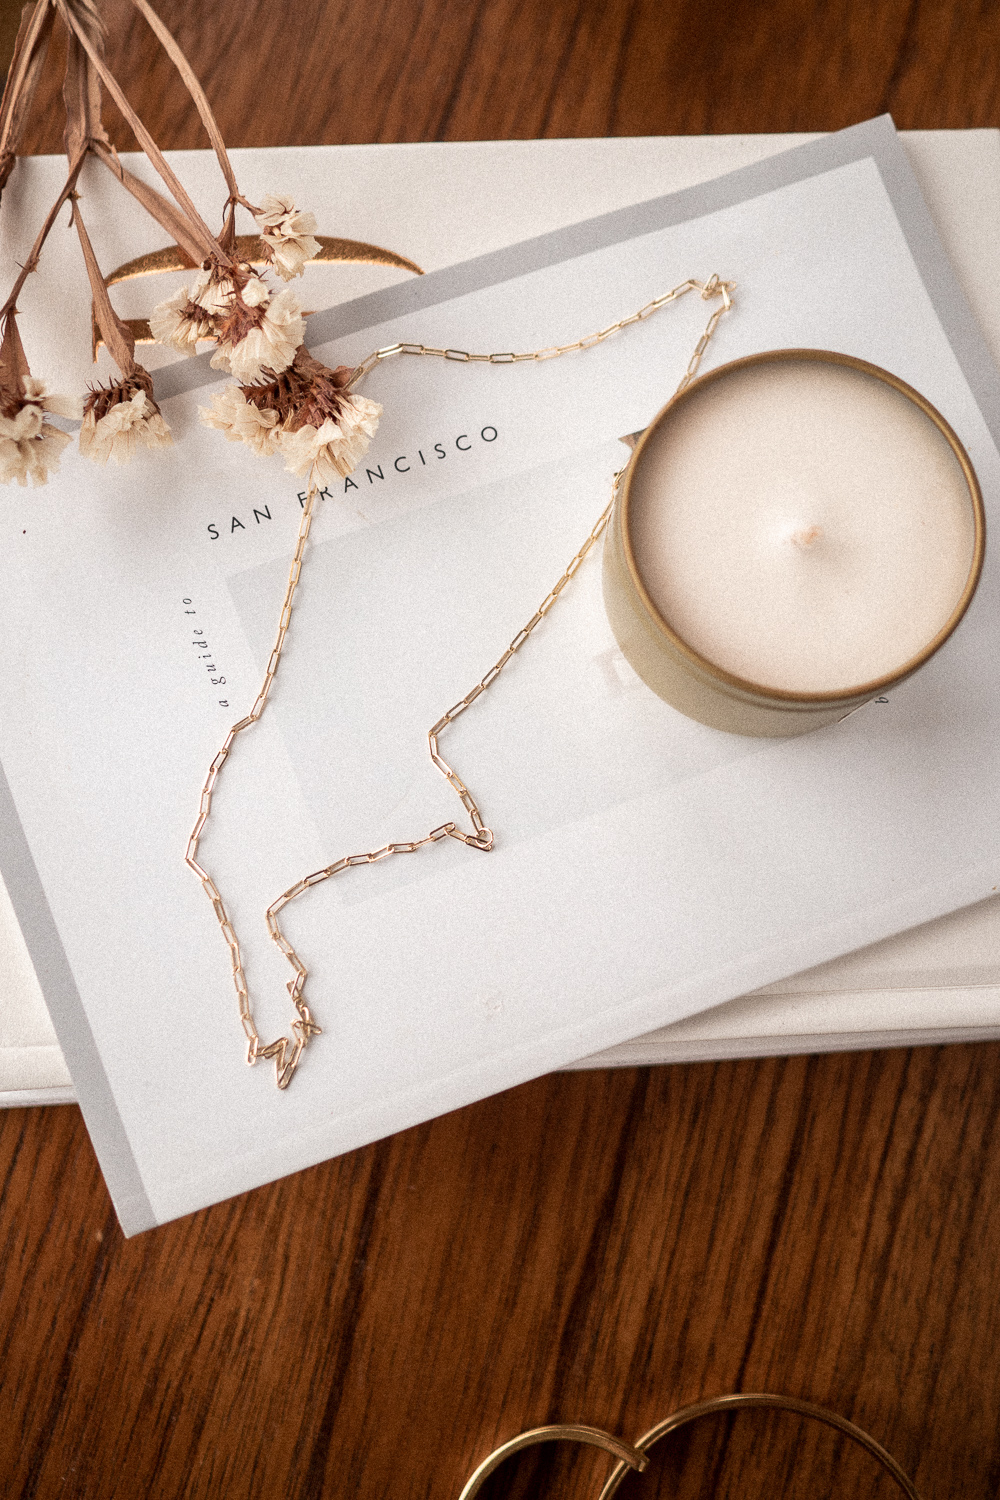 A closeup of the medium chain gold necklace from AU-Rate on a book, a part of my capsule jewelry collection